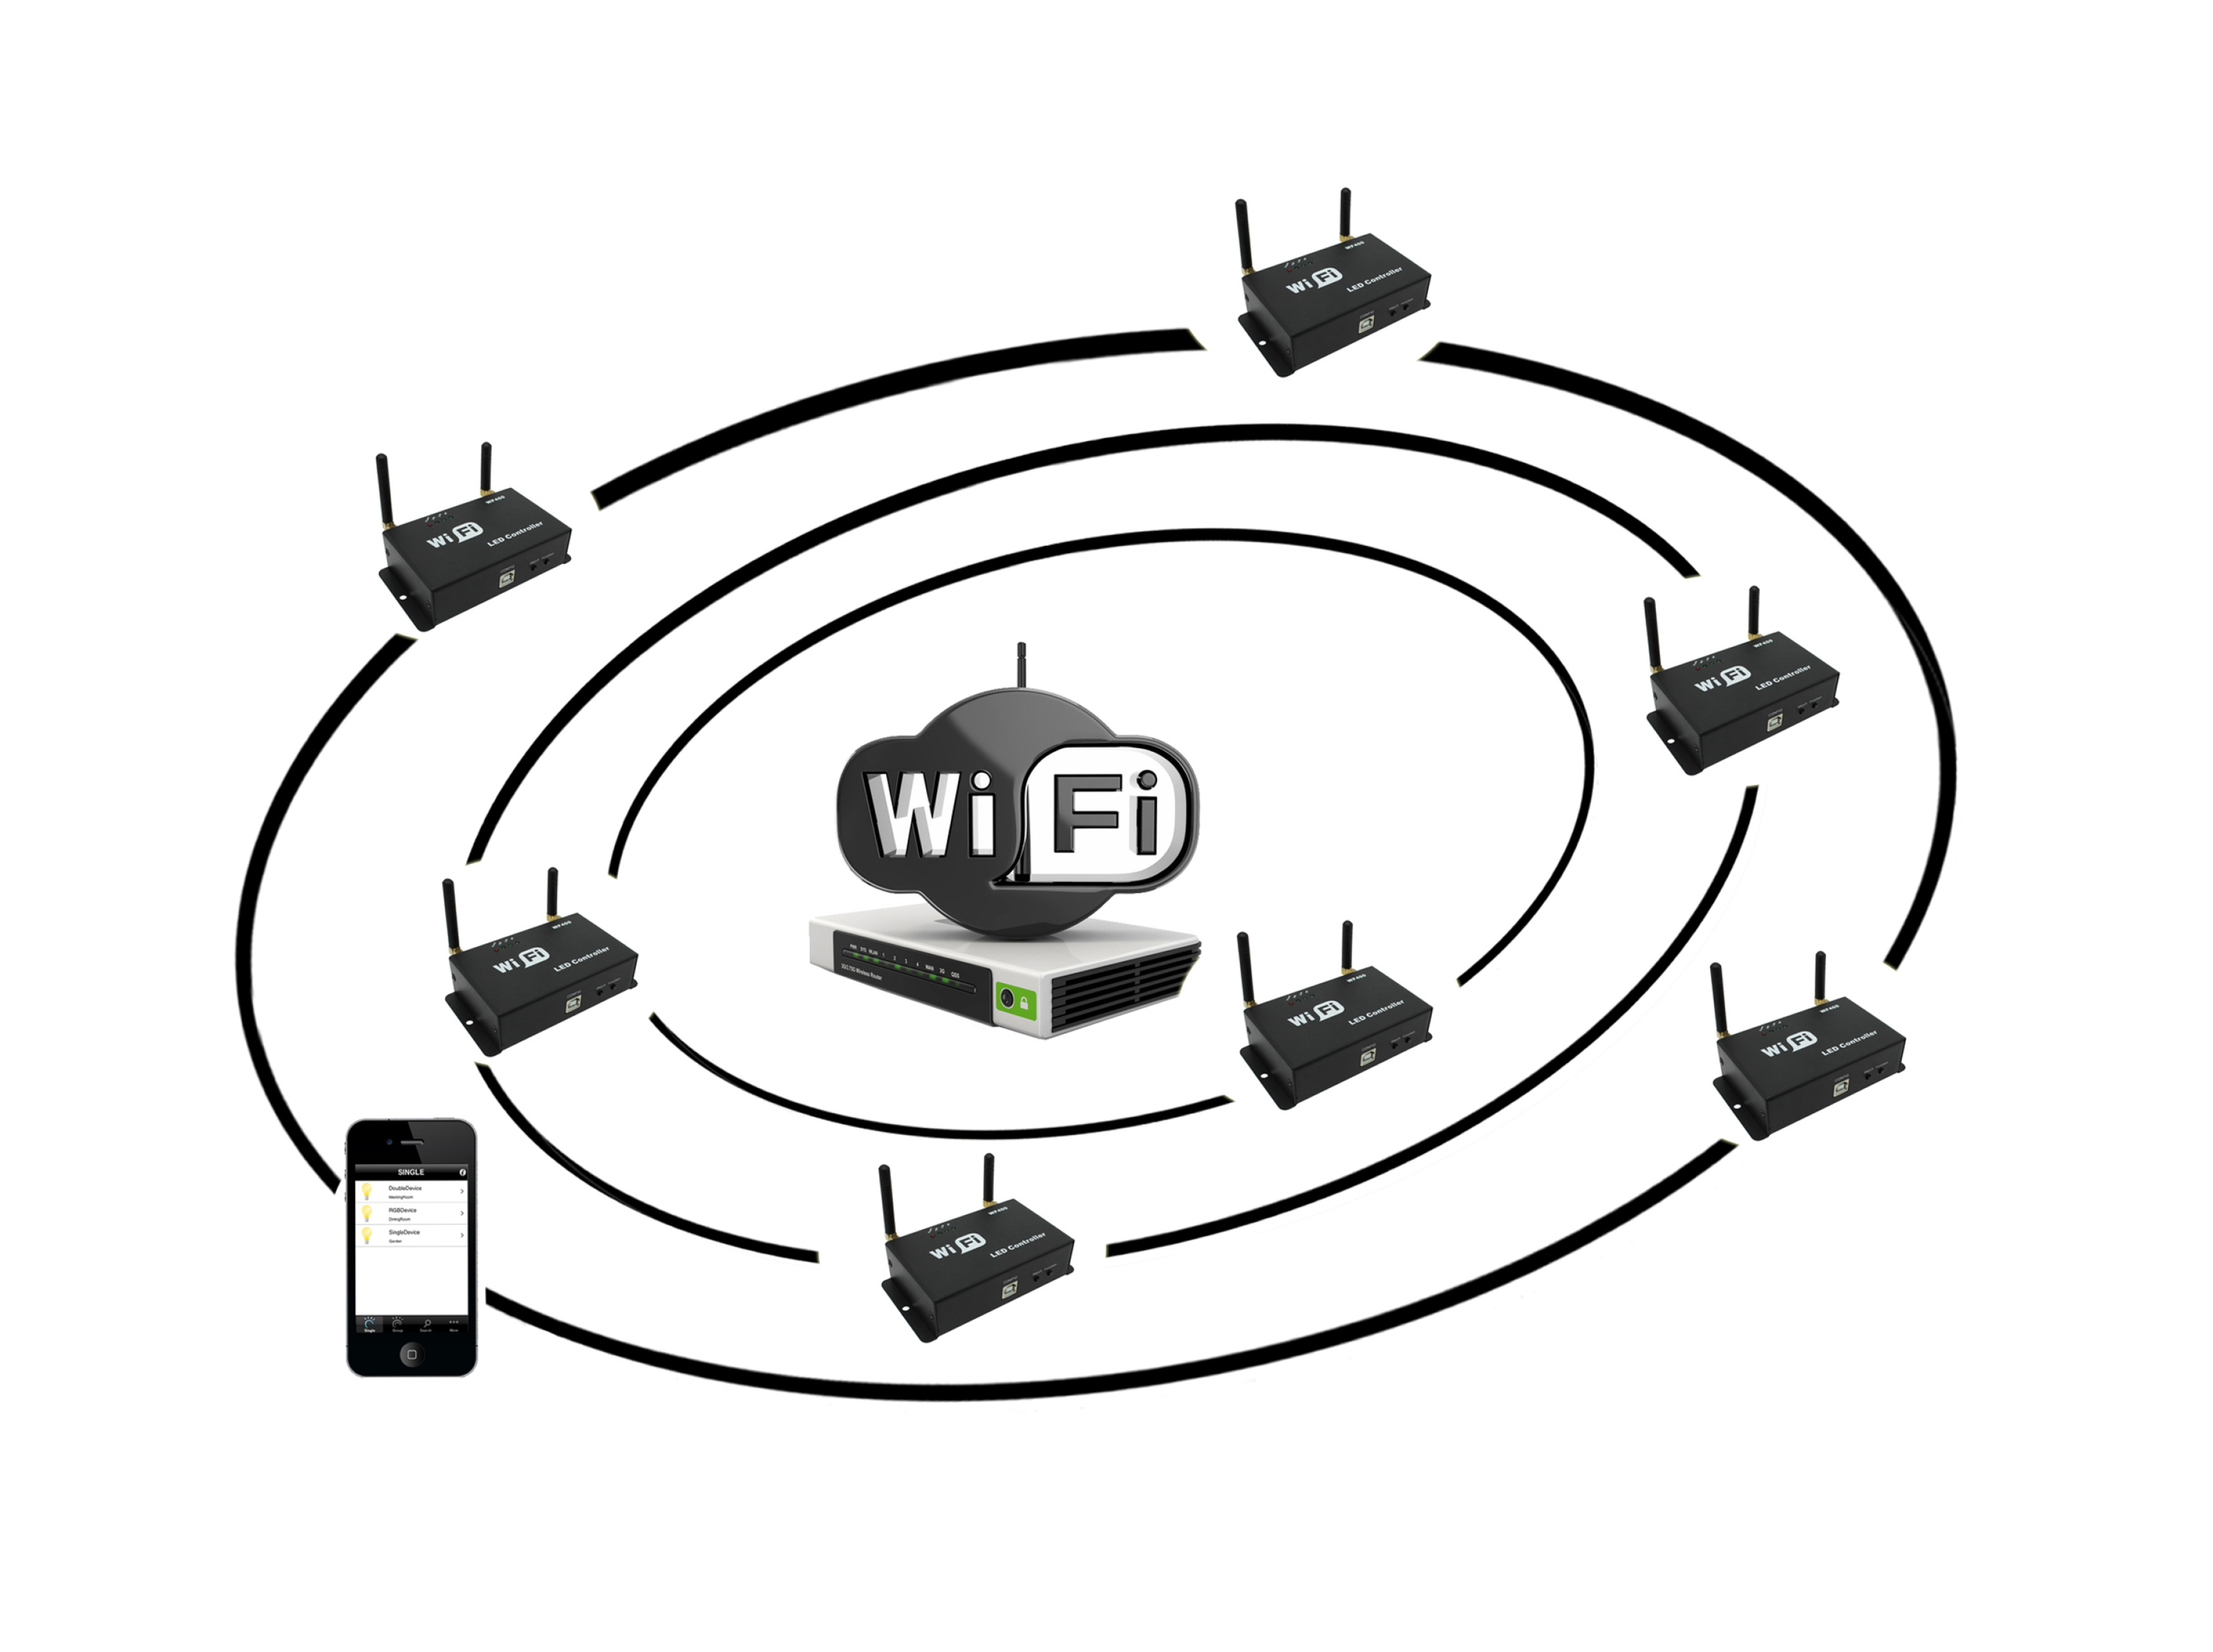 Wf400 Wifi Router Led Controler 5 24vdc